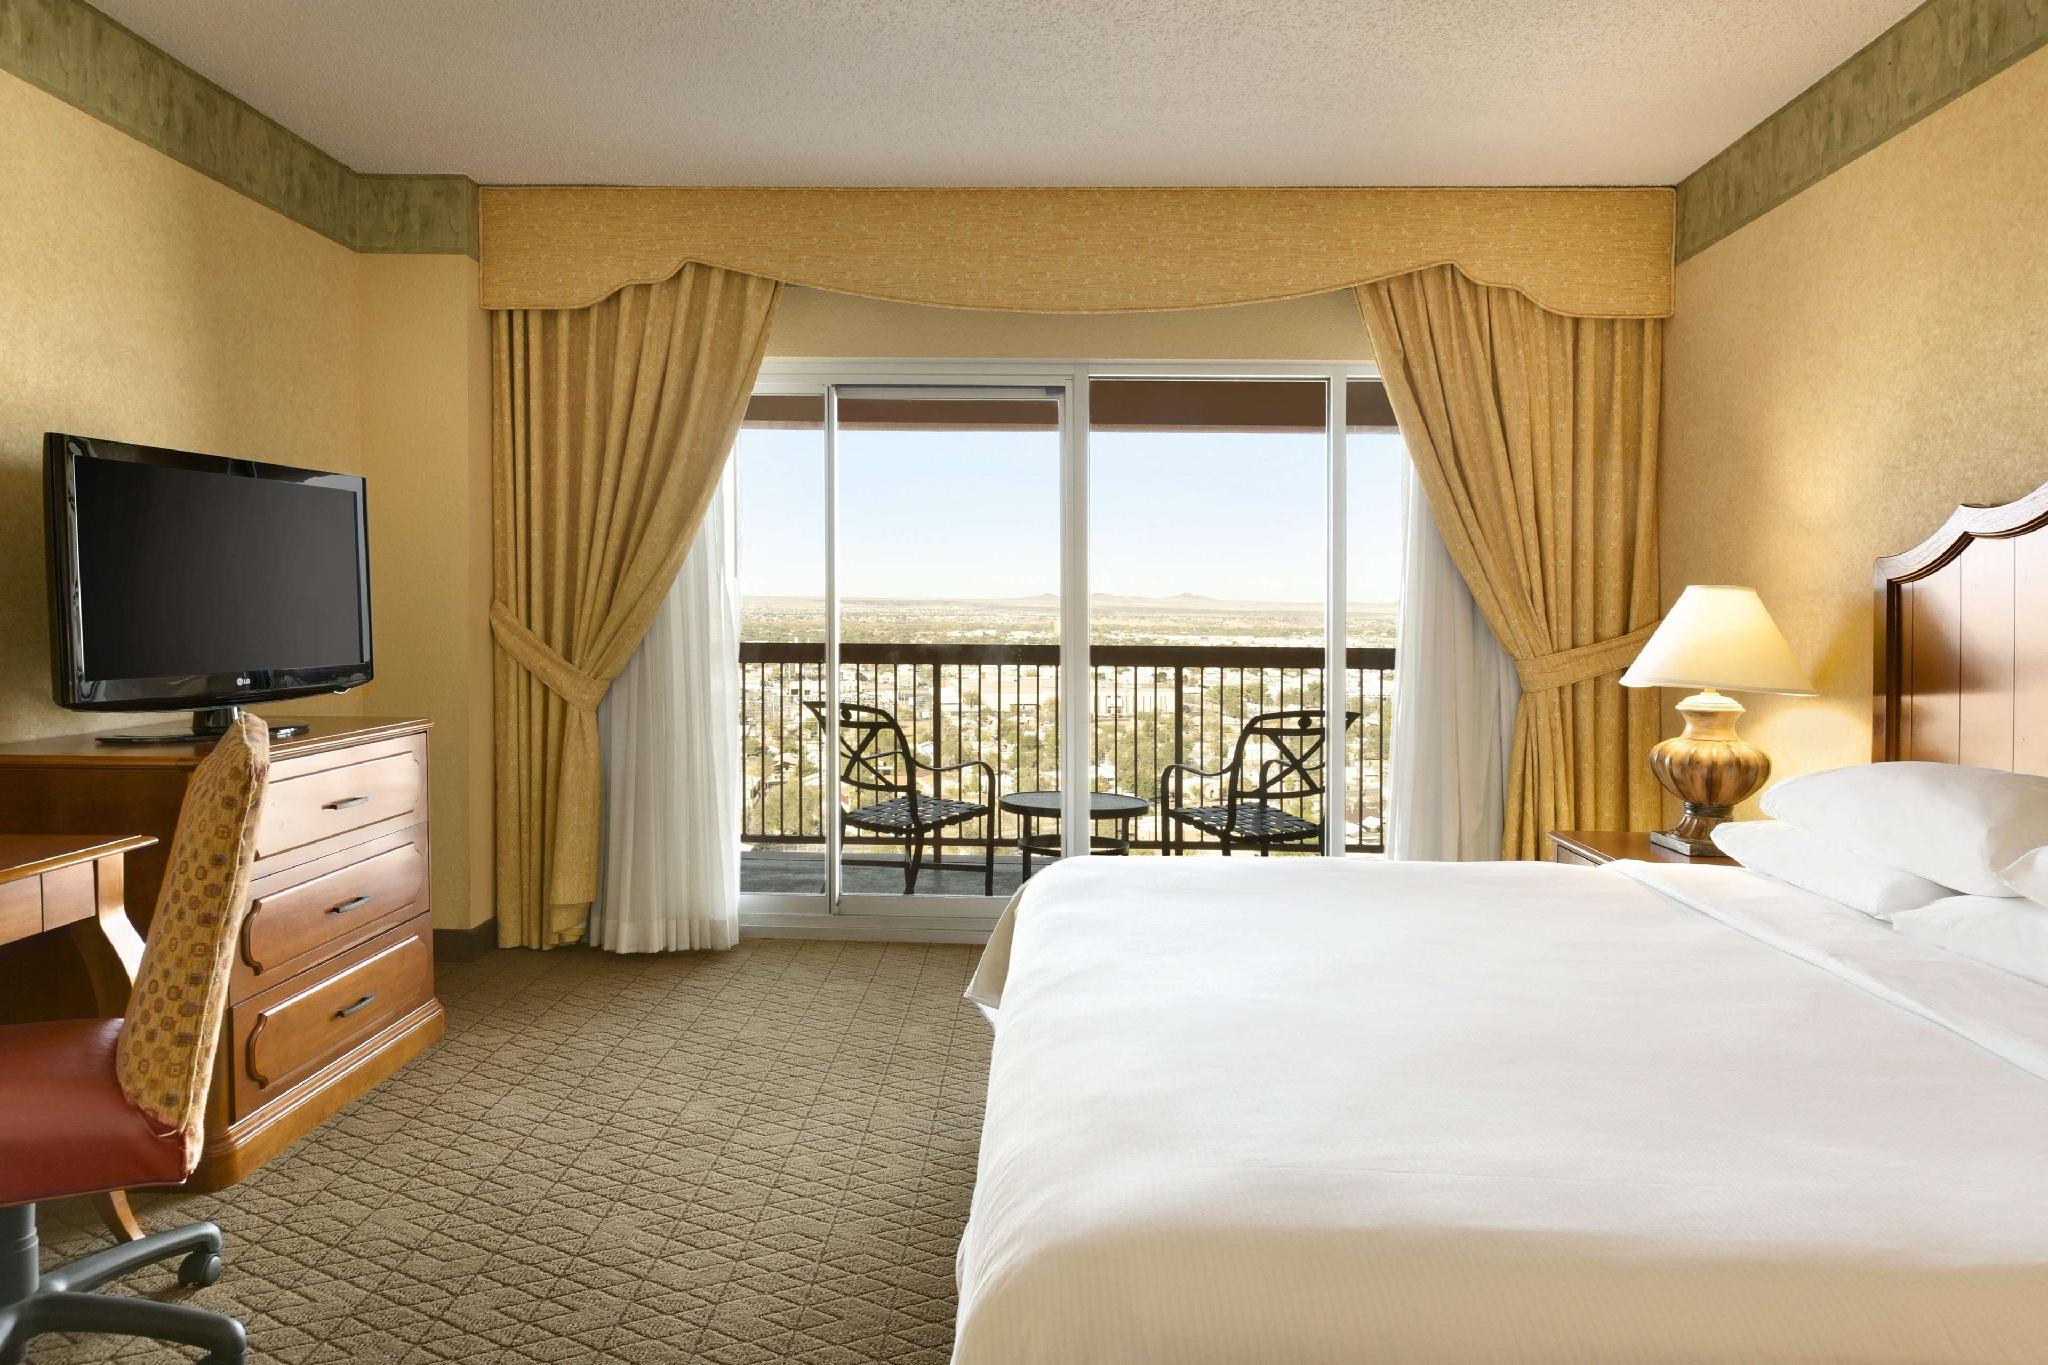 2 Room Premium Suite-1 King Bed